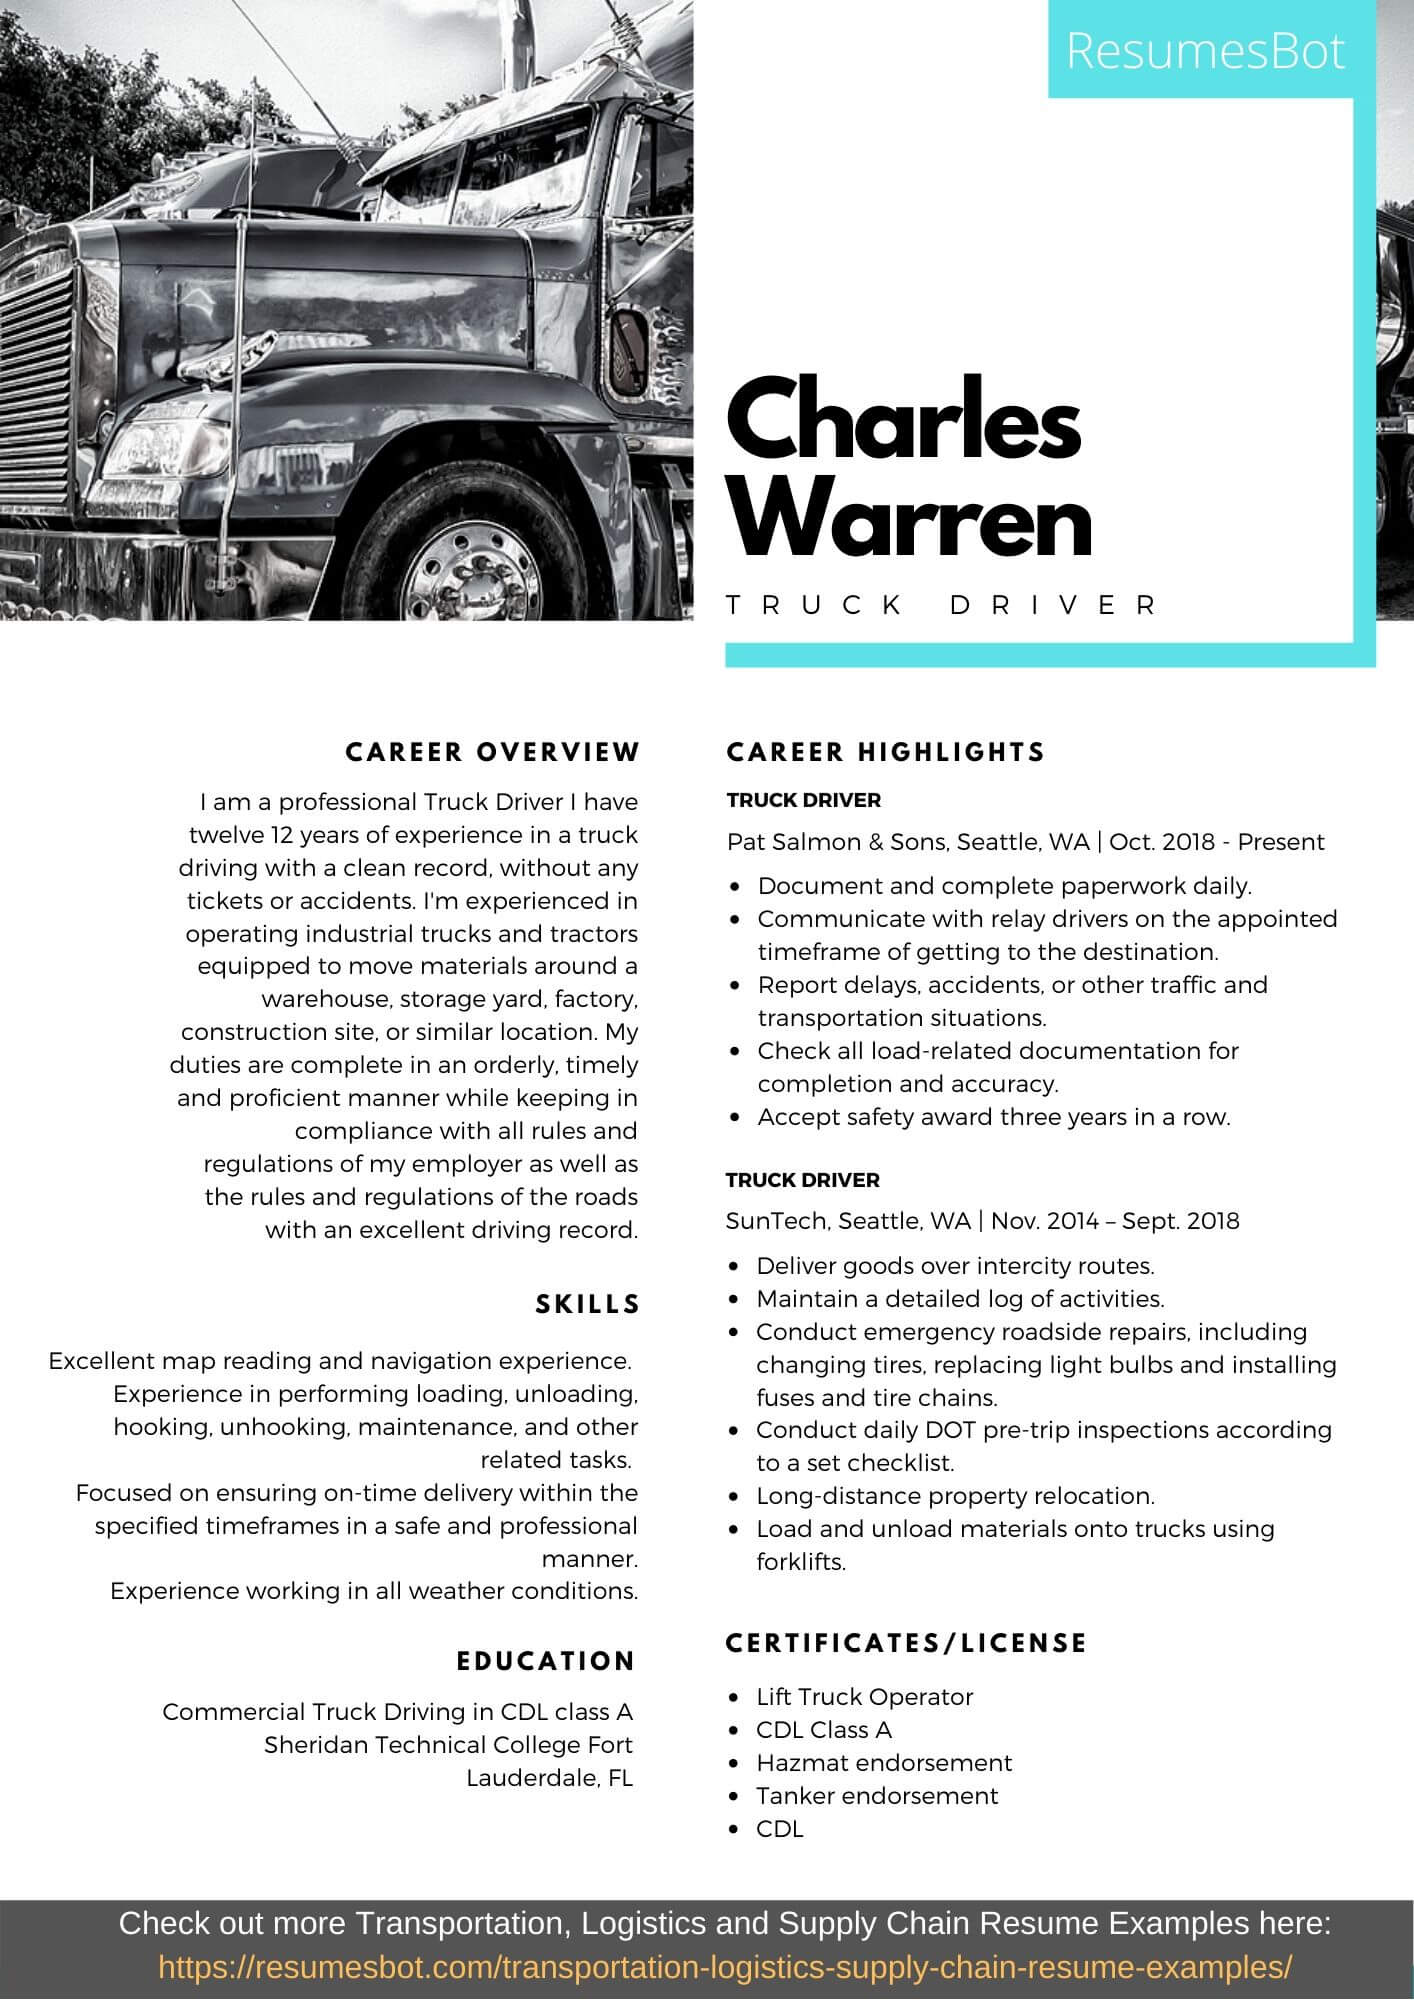 truck driver resume samples and tips pdf resumes bot template for cdl example sap fico Resume Resume Template For Cdl Truck Driver